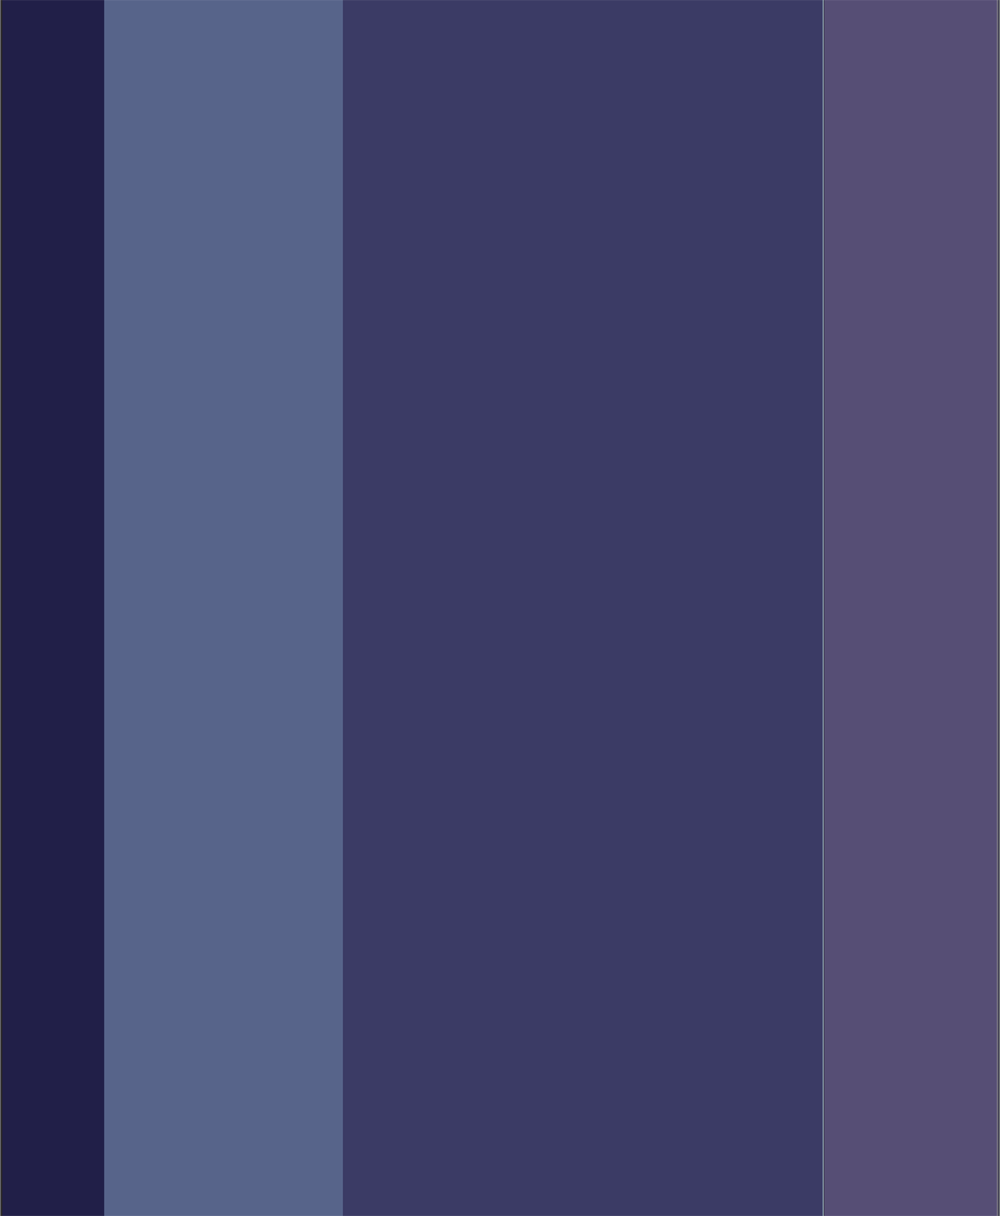 colours-20180810-sky-1.png